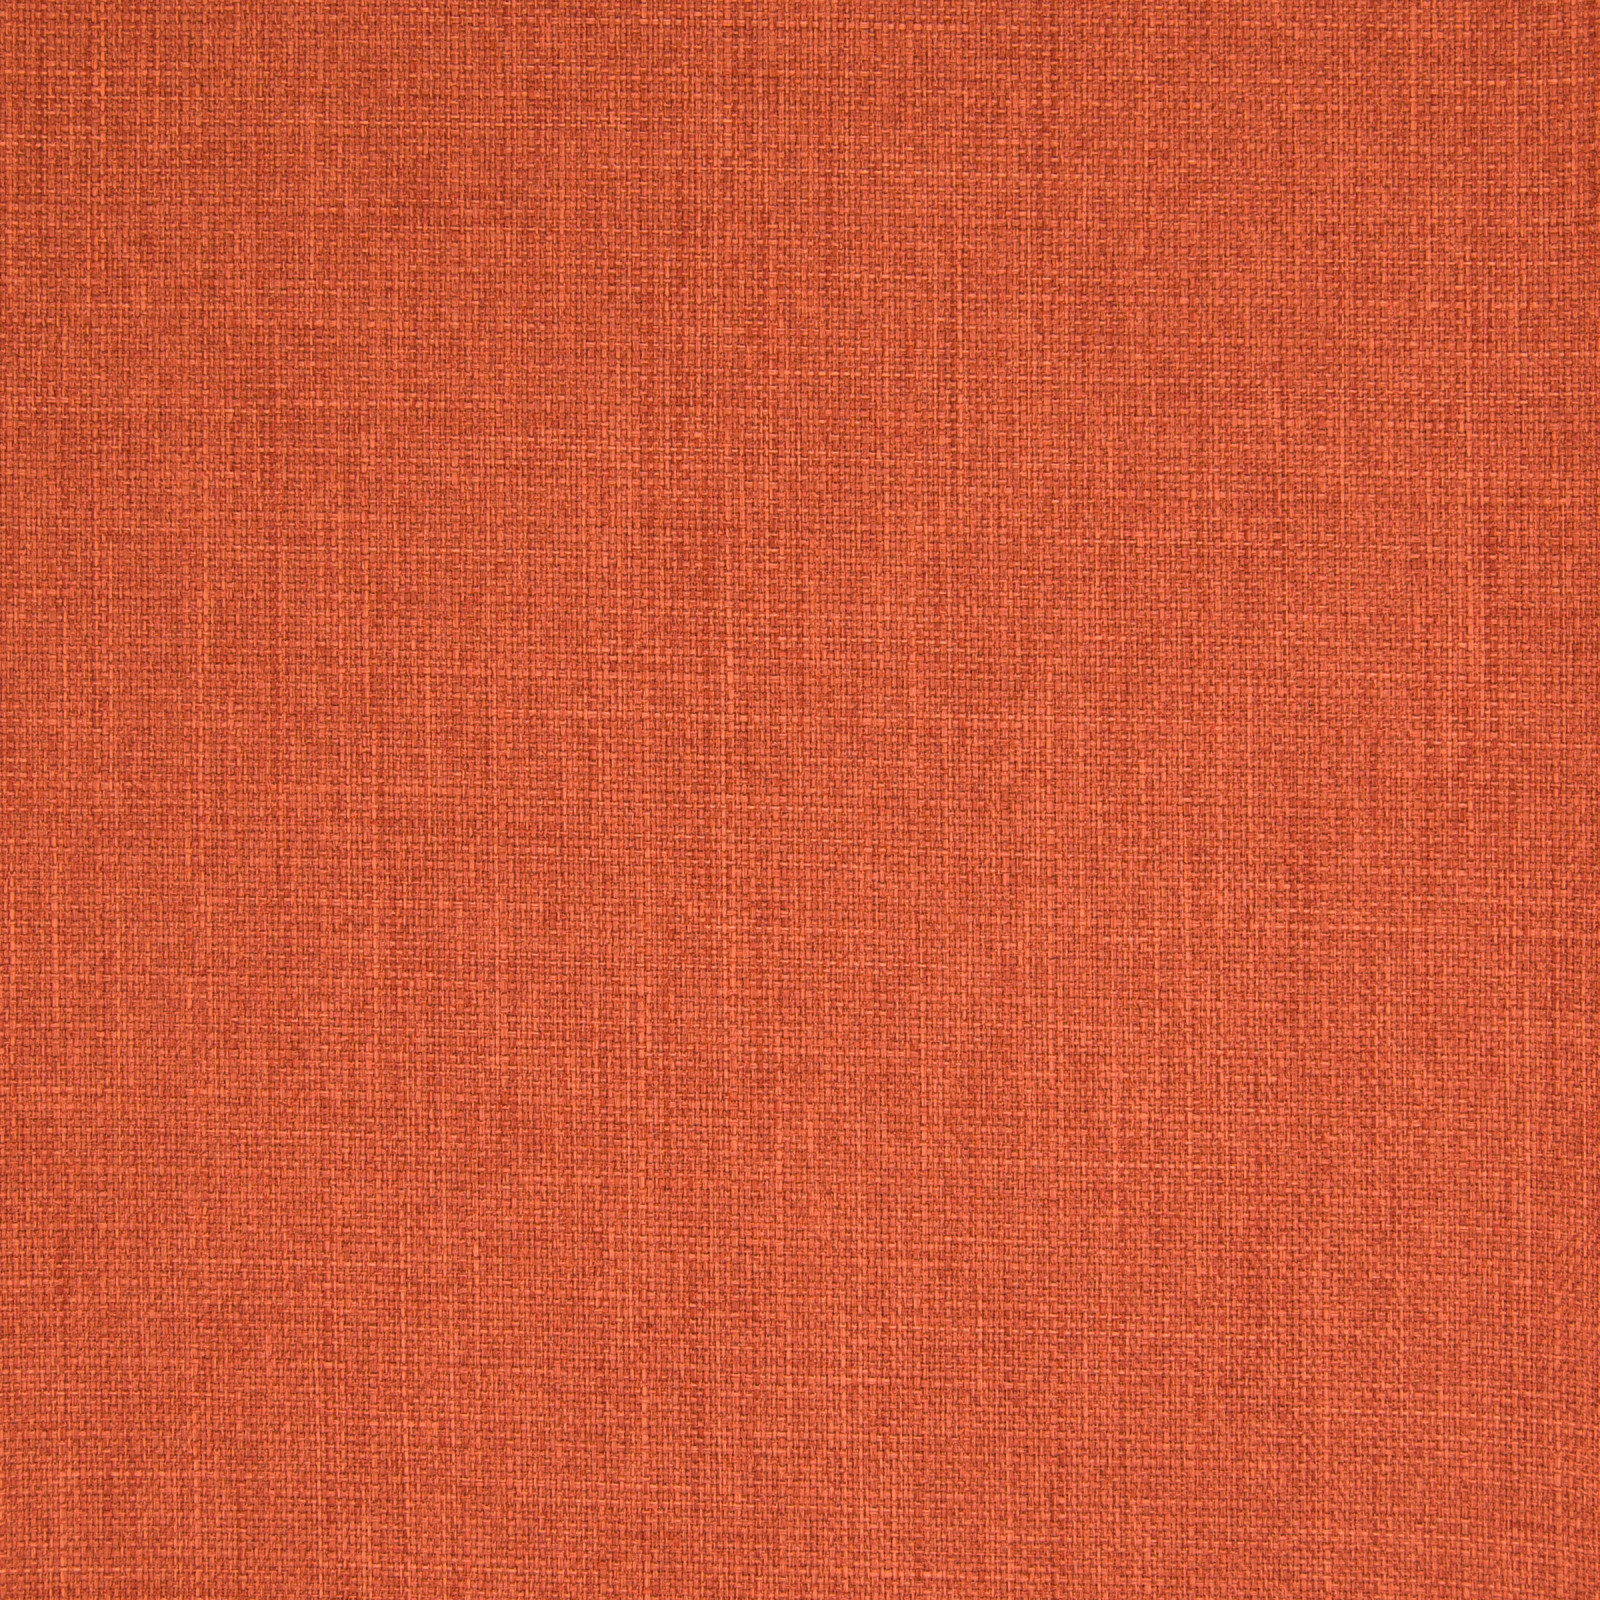 B7056 Terracotta Greenhouse Fabrics